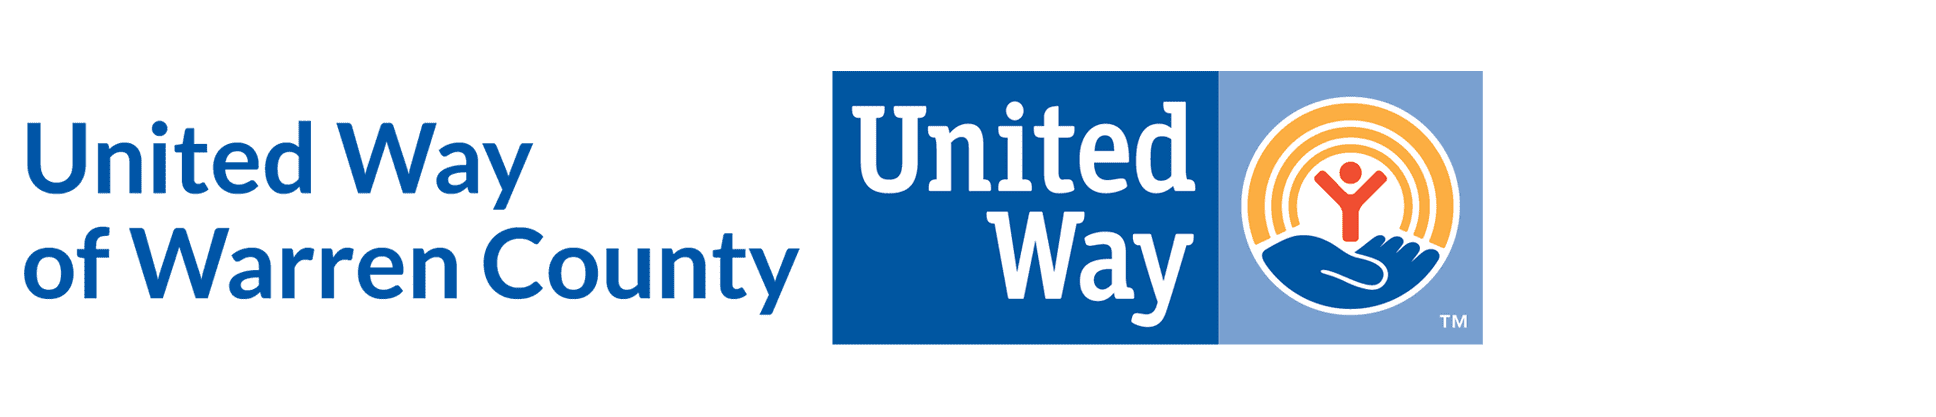 United Way Warren County Logo (opens in a new tab)